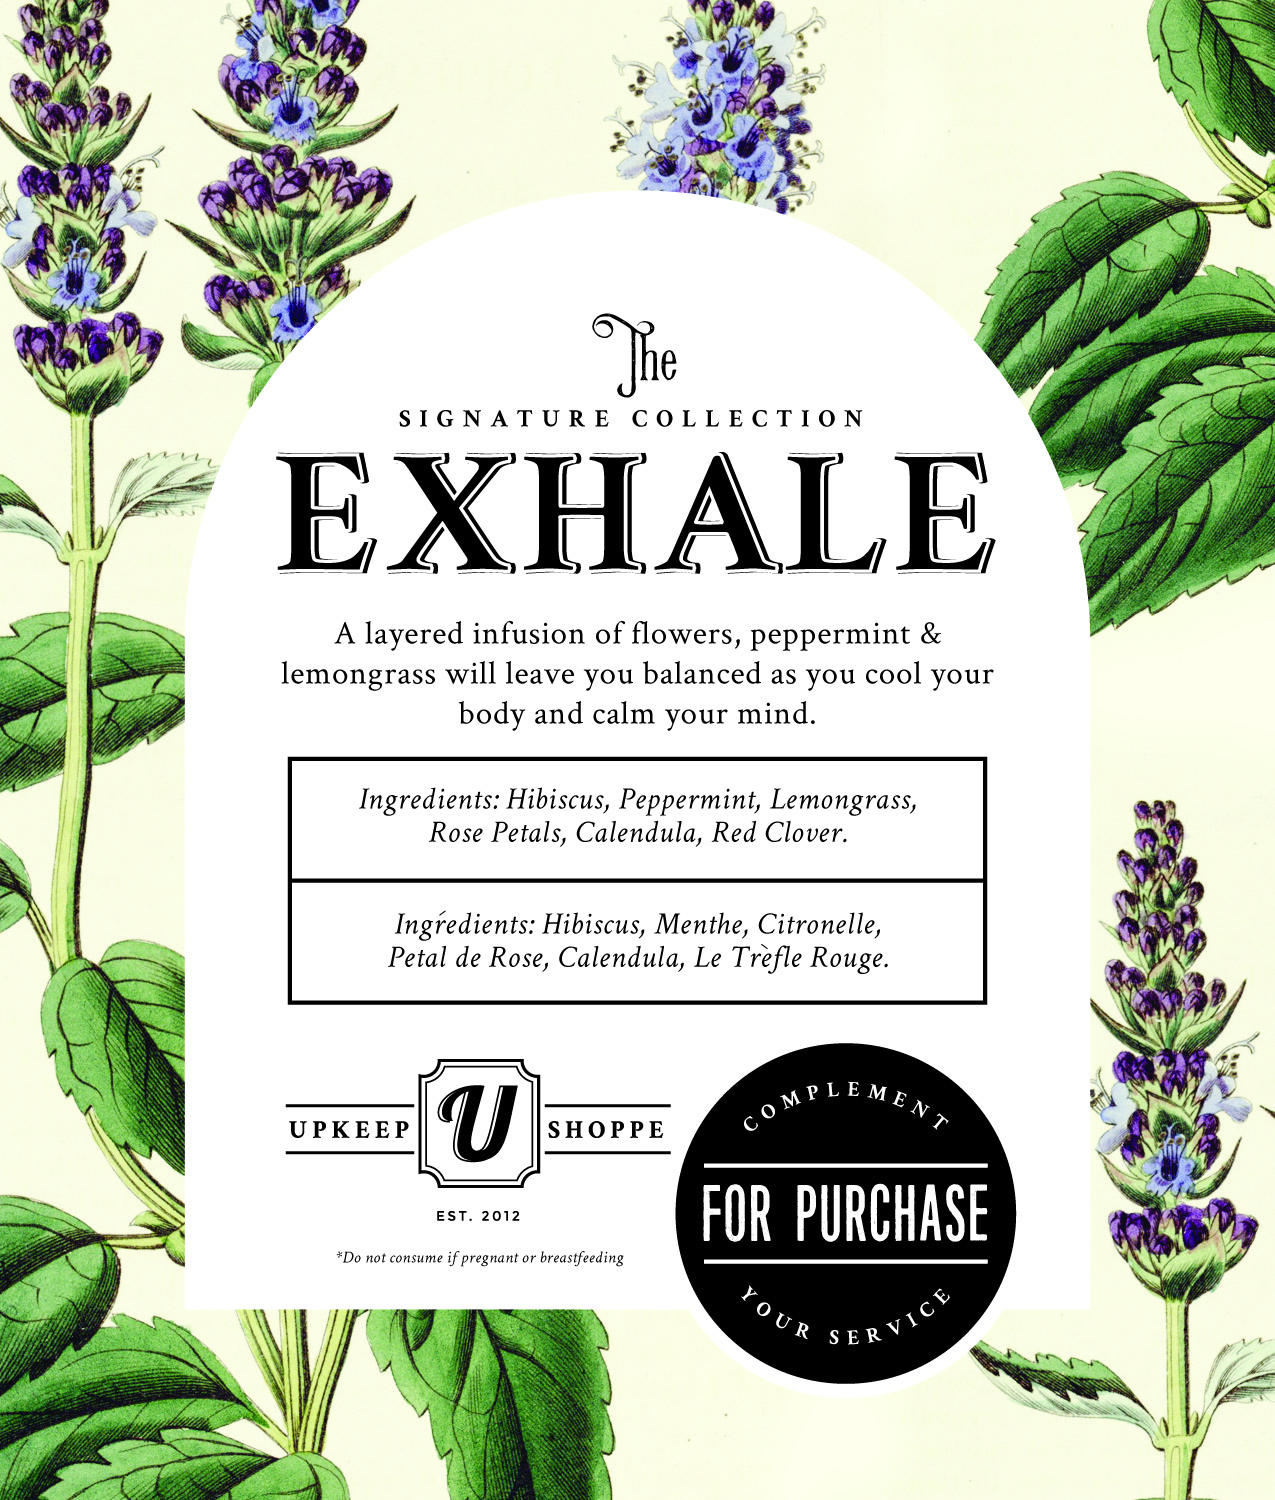 tea-labels-UKS-exhale-01.jpg